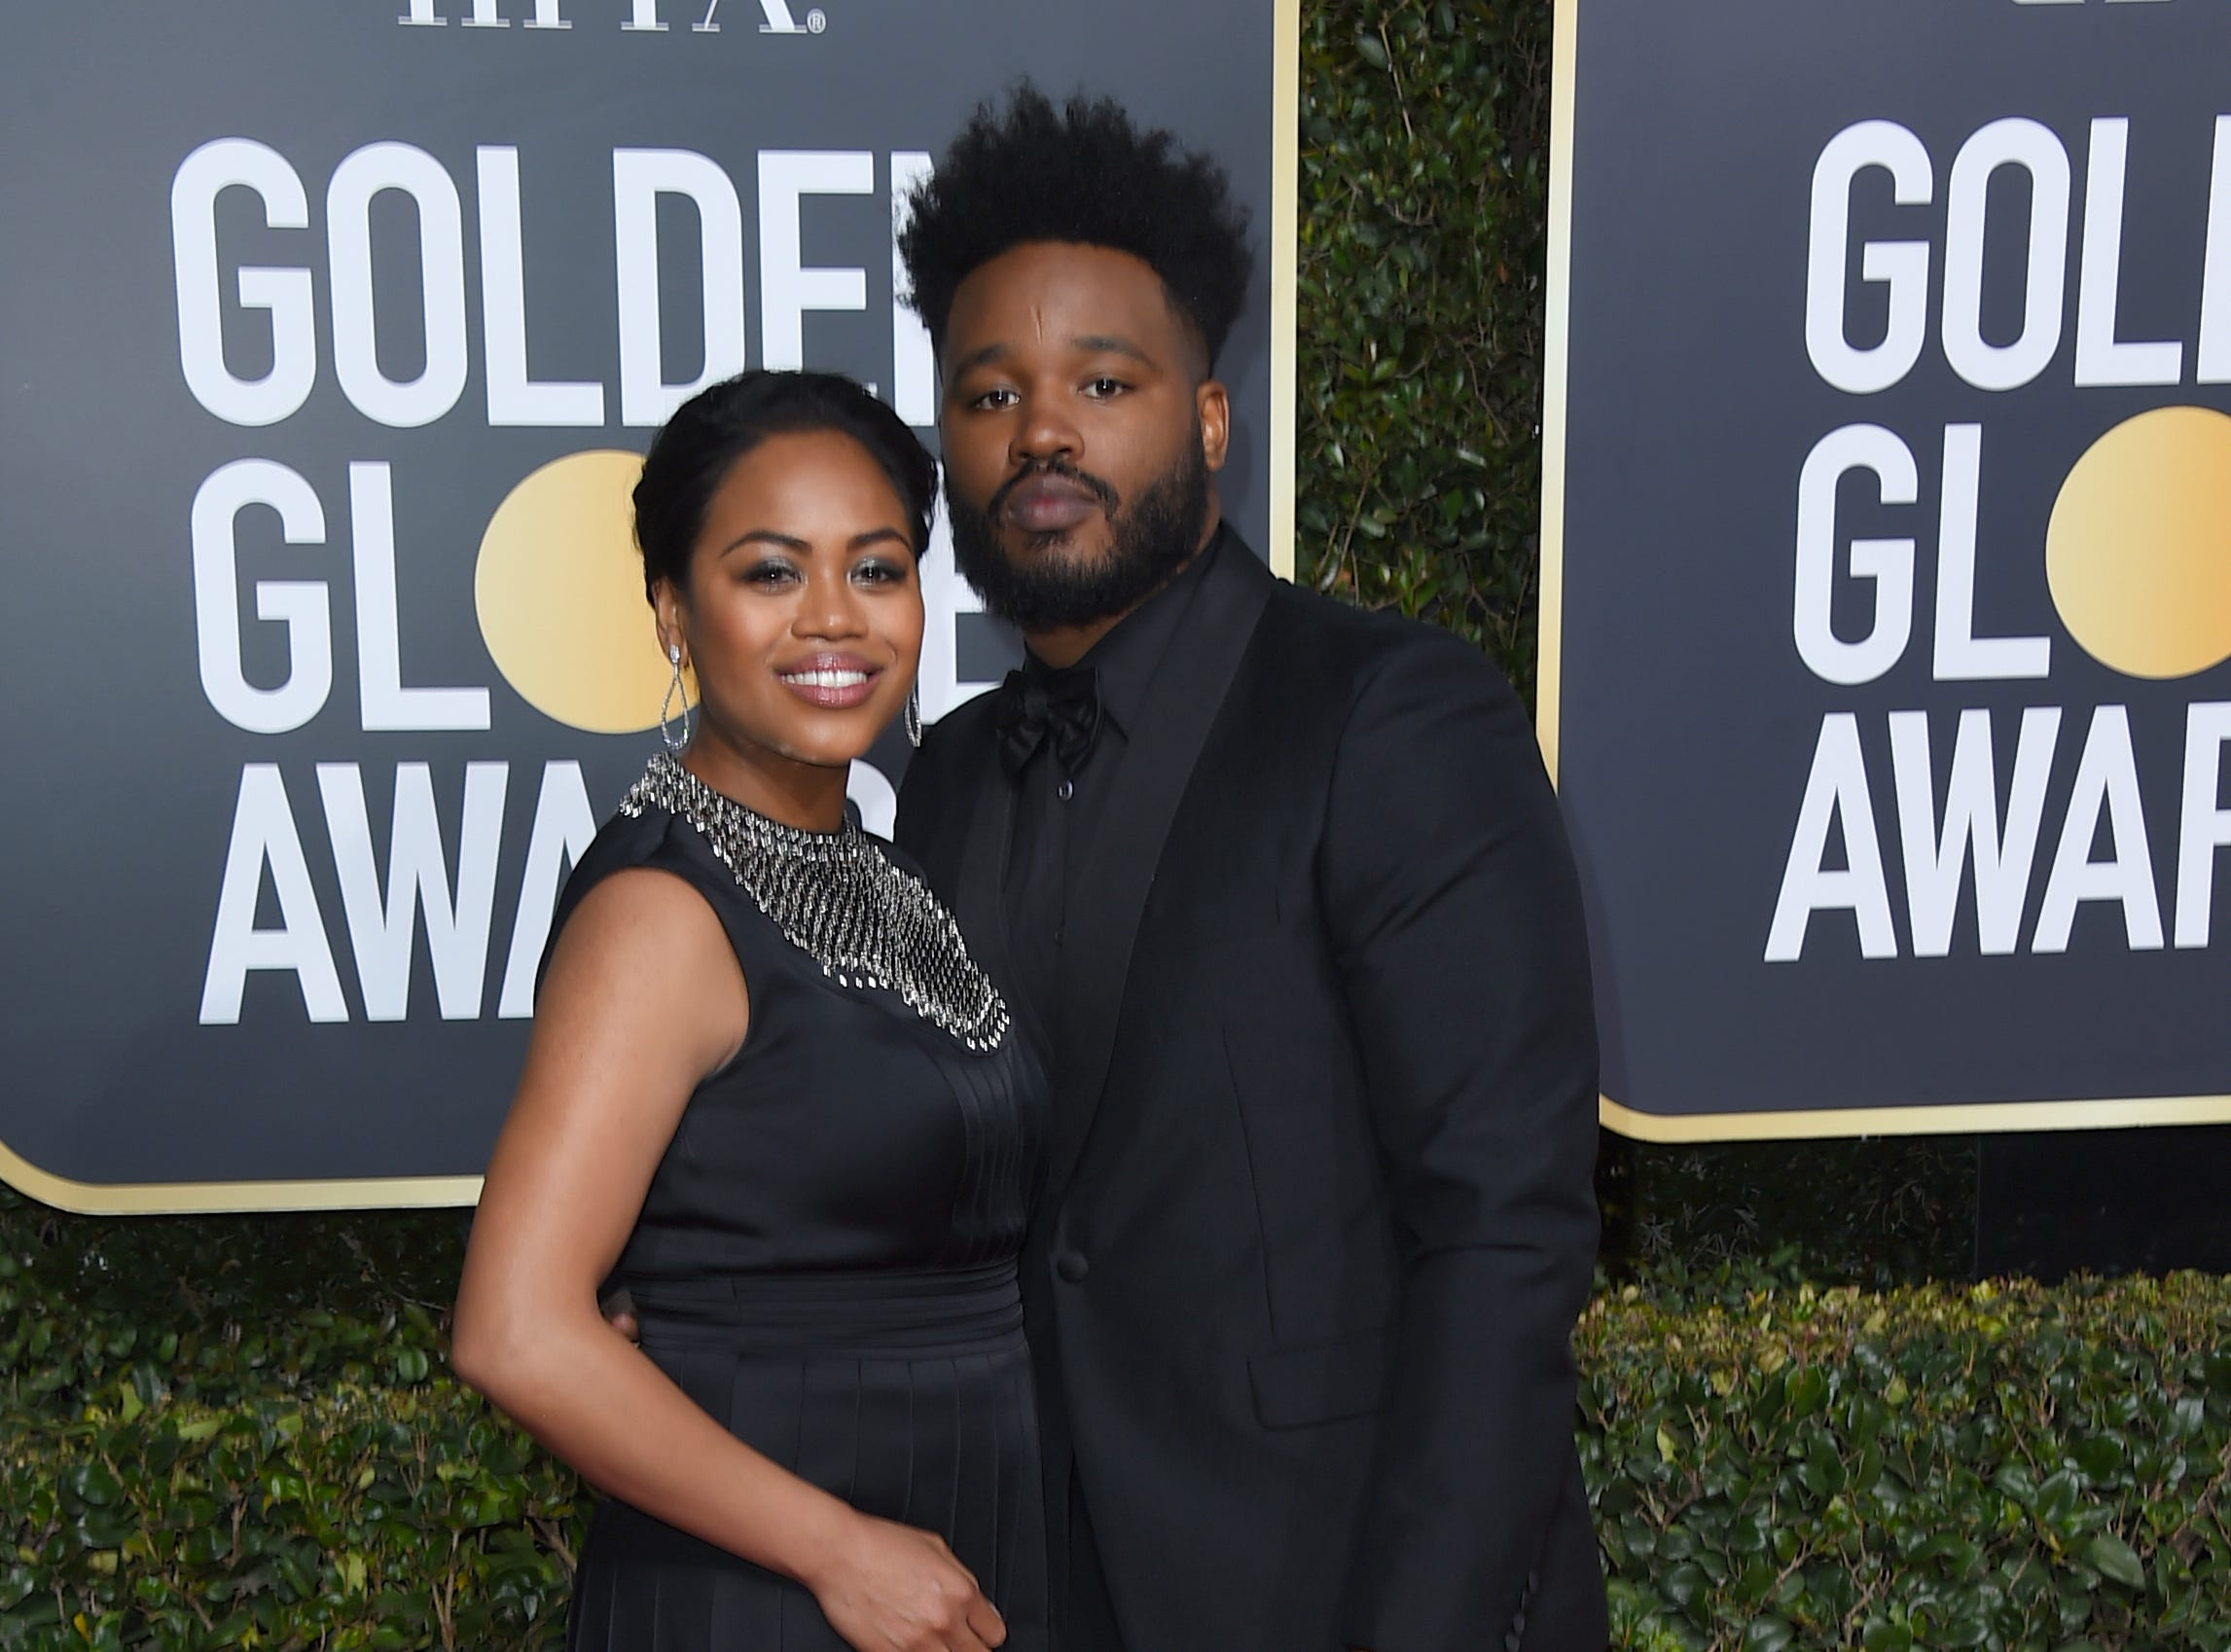 Ryan Coogler, right, and Zinzi Evans arrive at the 76th annual Golden Globe Awards at the Beverly Hilton Hotel.